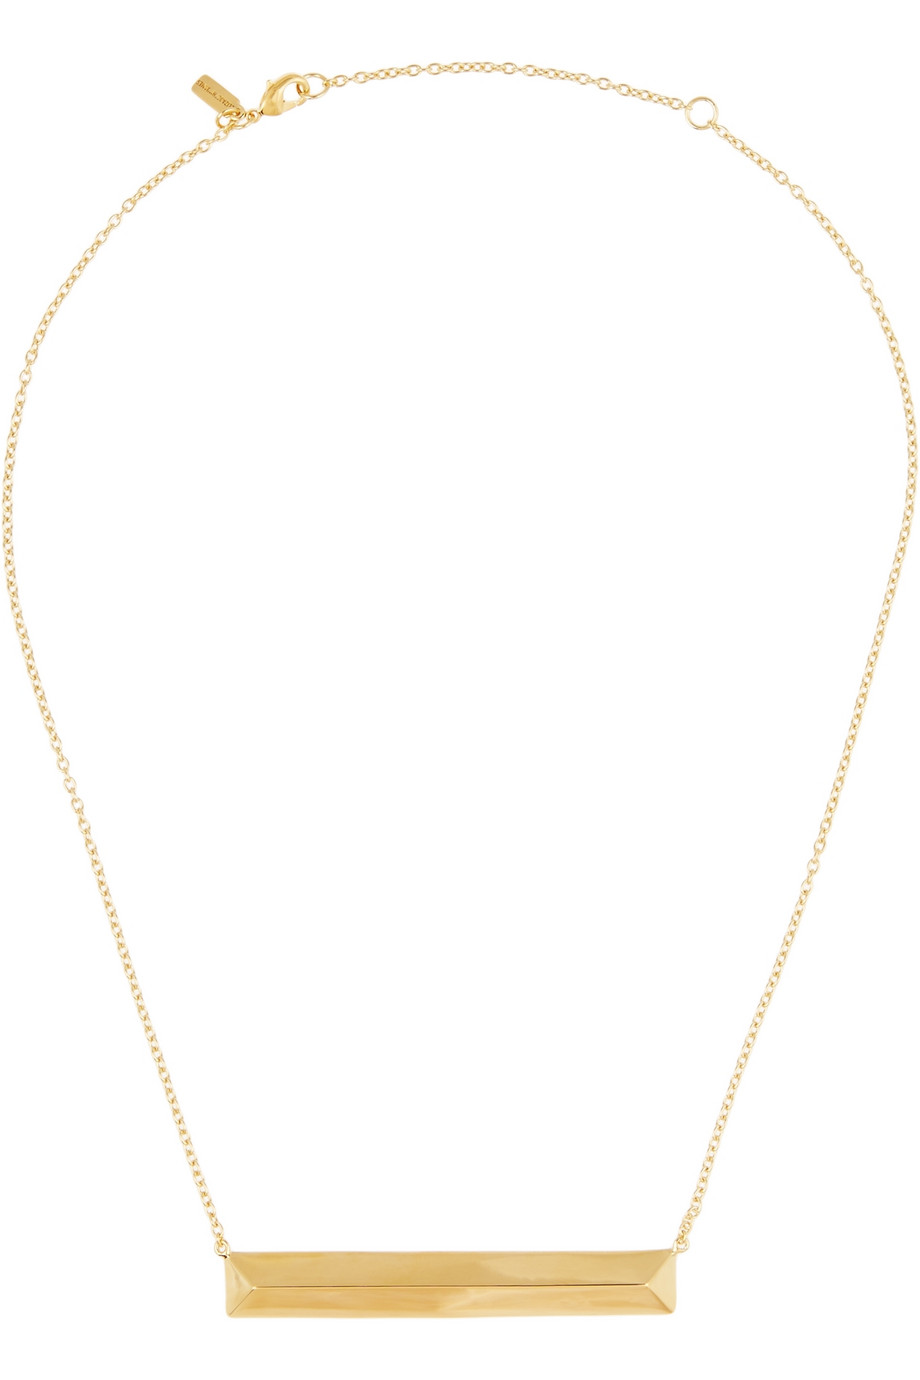 Elizabeth and James Metropolis gold-tone necklace